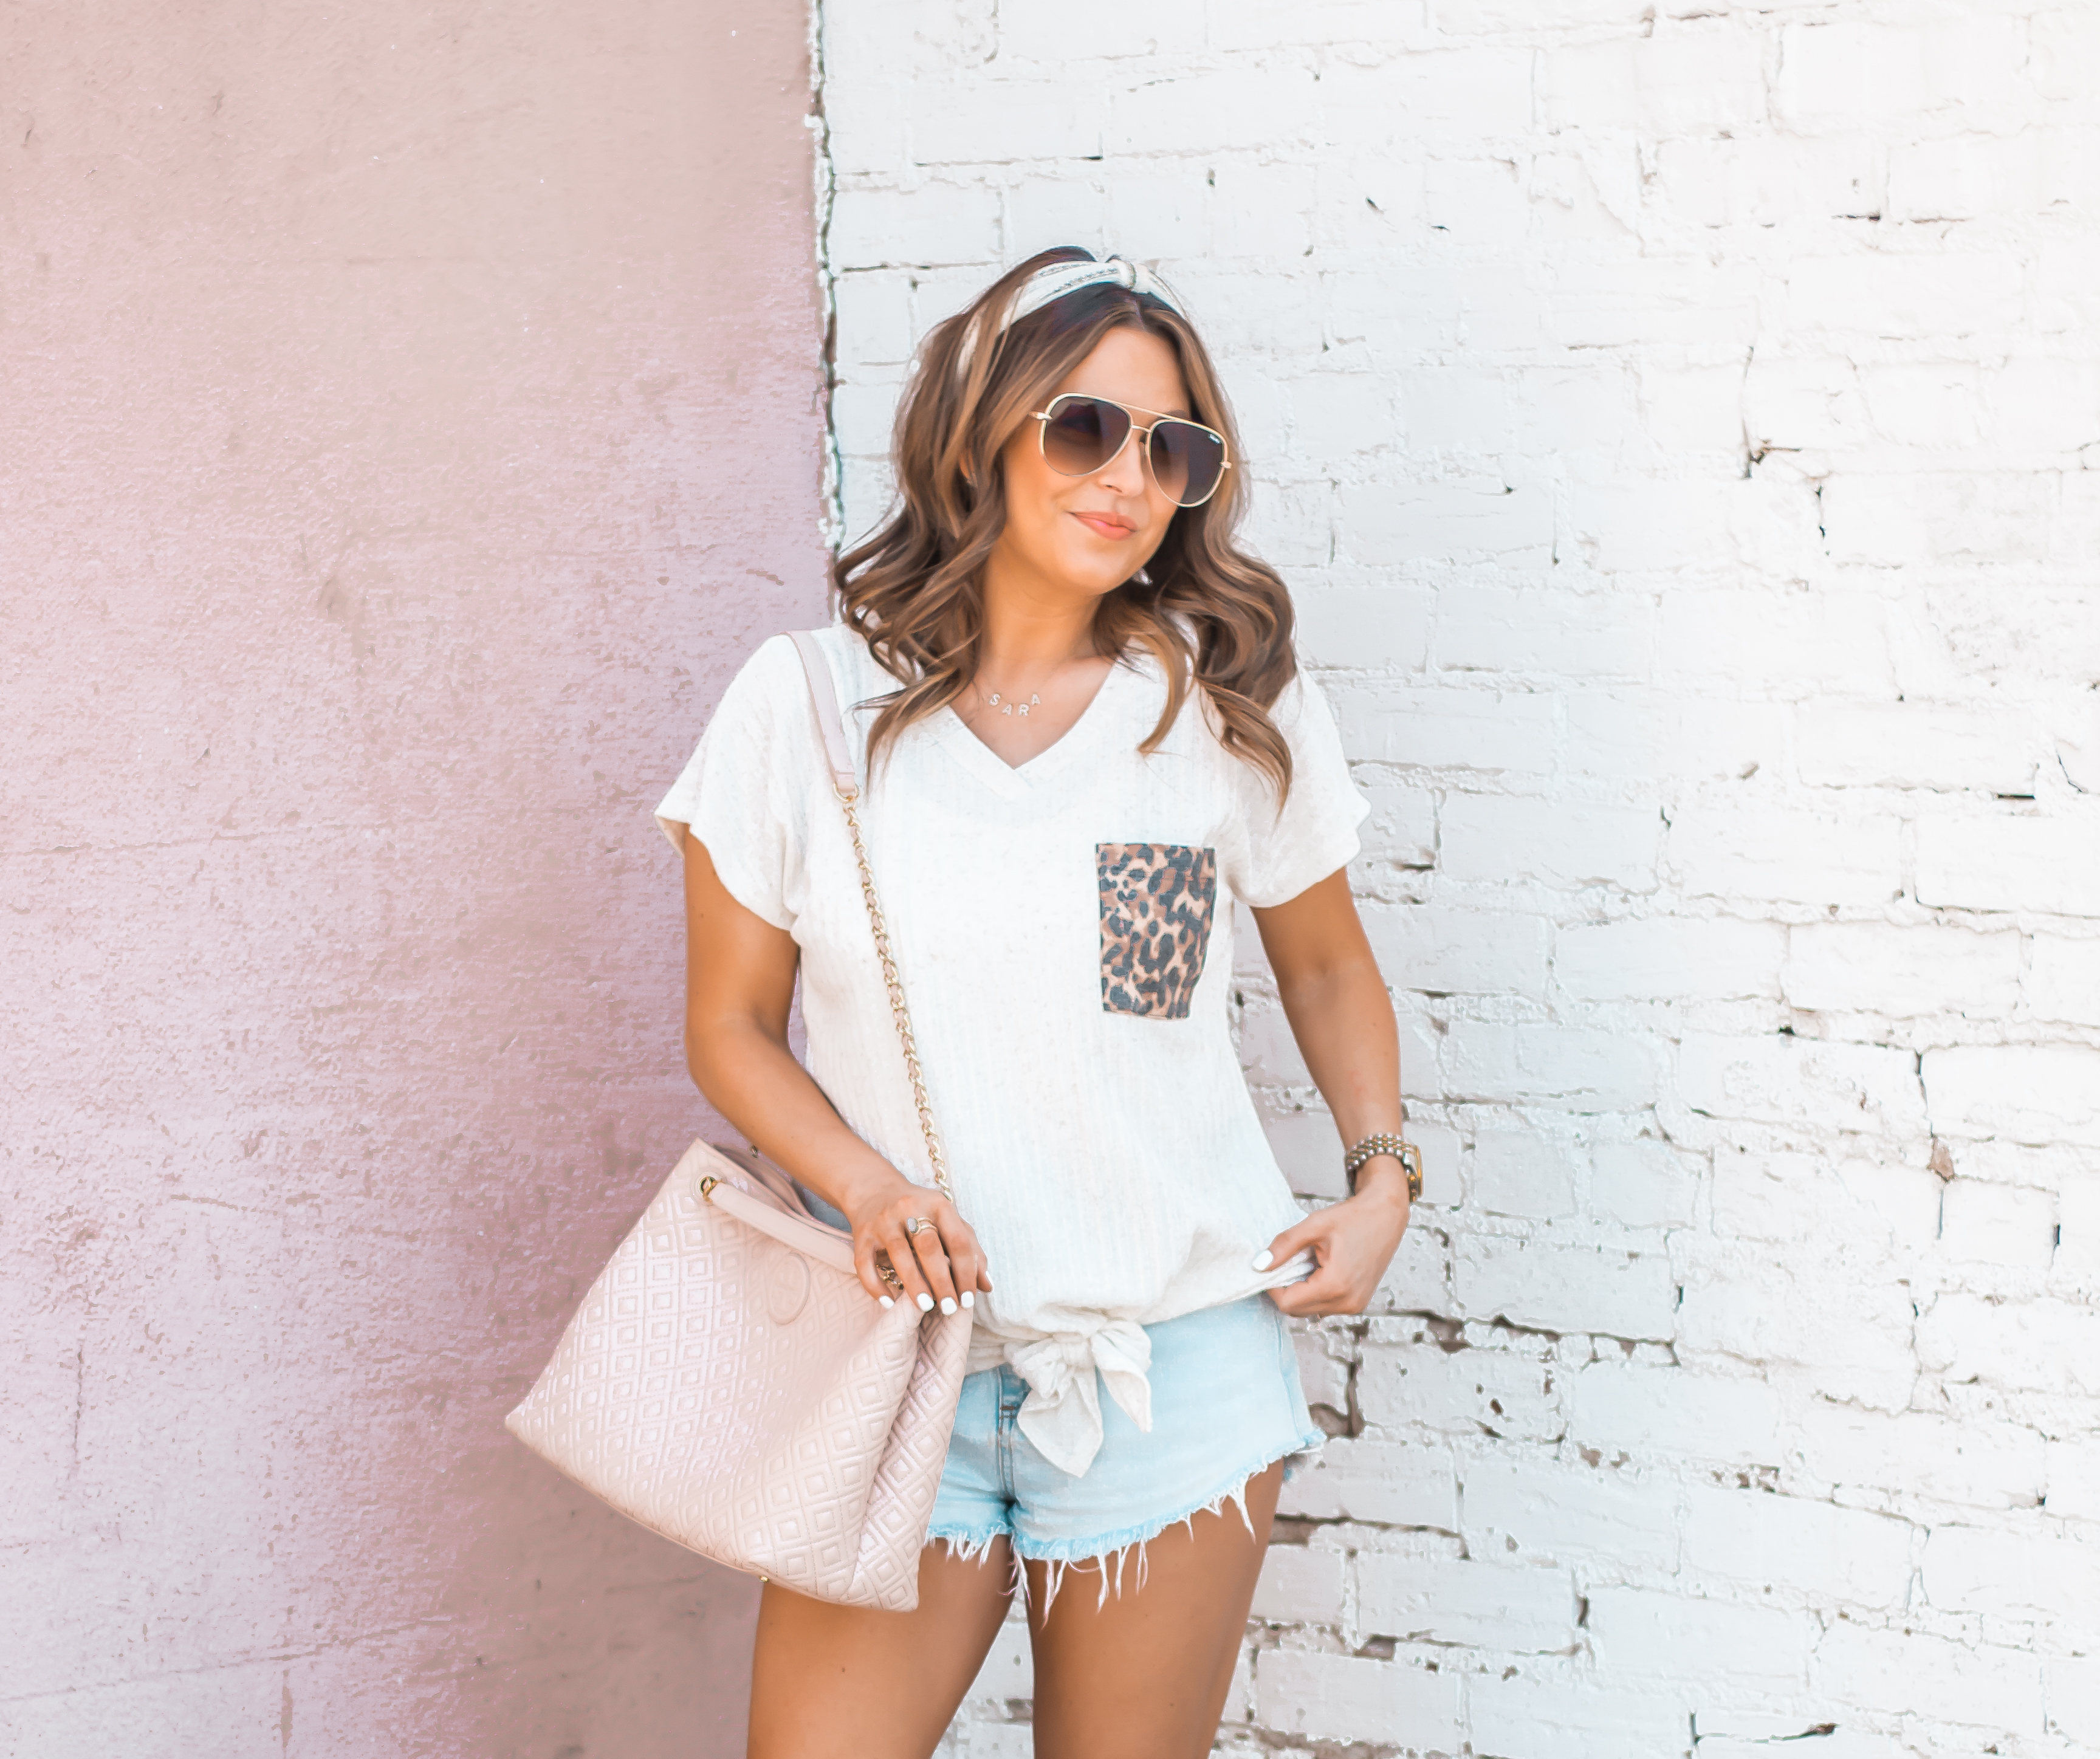 Women's Fashion-Summer Fashion-Summer Outfit Inspiration-Sabby Style-Omaha Blogger-Leopard Pocket Top-The Style Bar Boutique-Cutoff Shorts-Espadrille Wedges-Marc Fisher Wedges-Tory Burch Fleming-Quay Sunglasses-Headband Trend-Omaha-Nebraska-Midwest Blogger-15